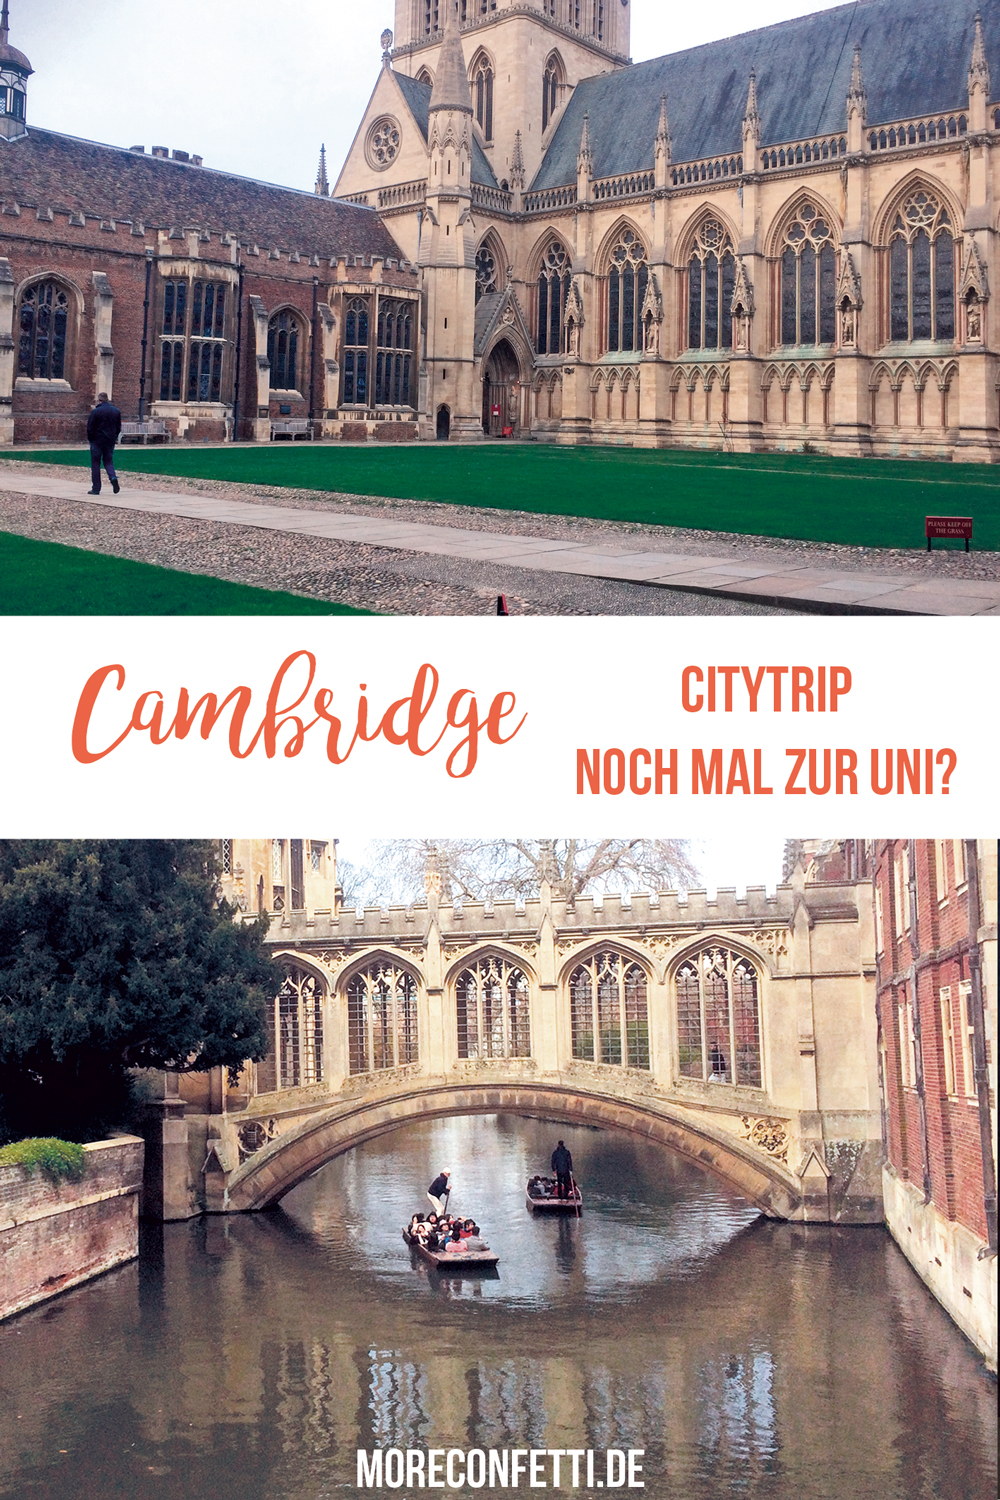 cambridge-Reise-moreconfetti.de